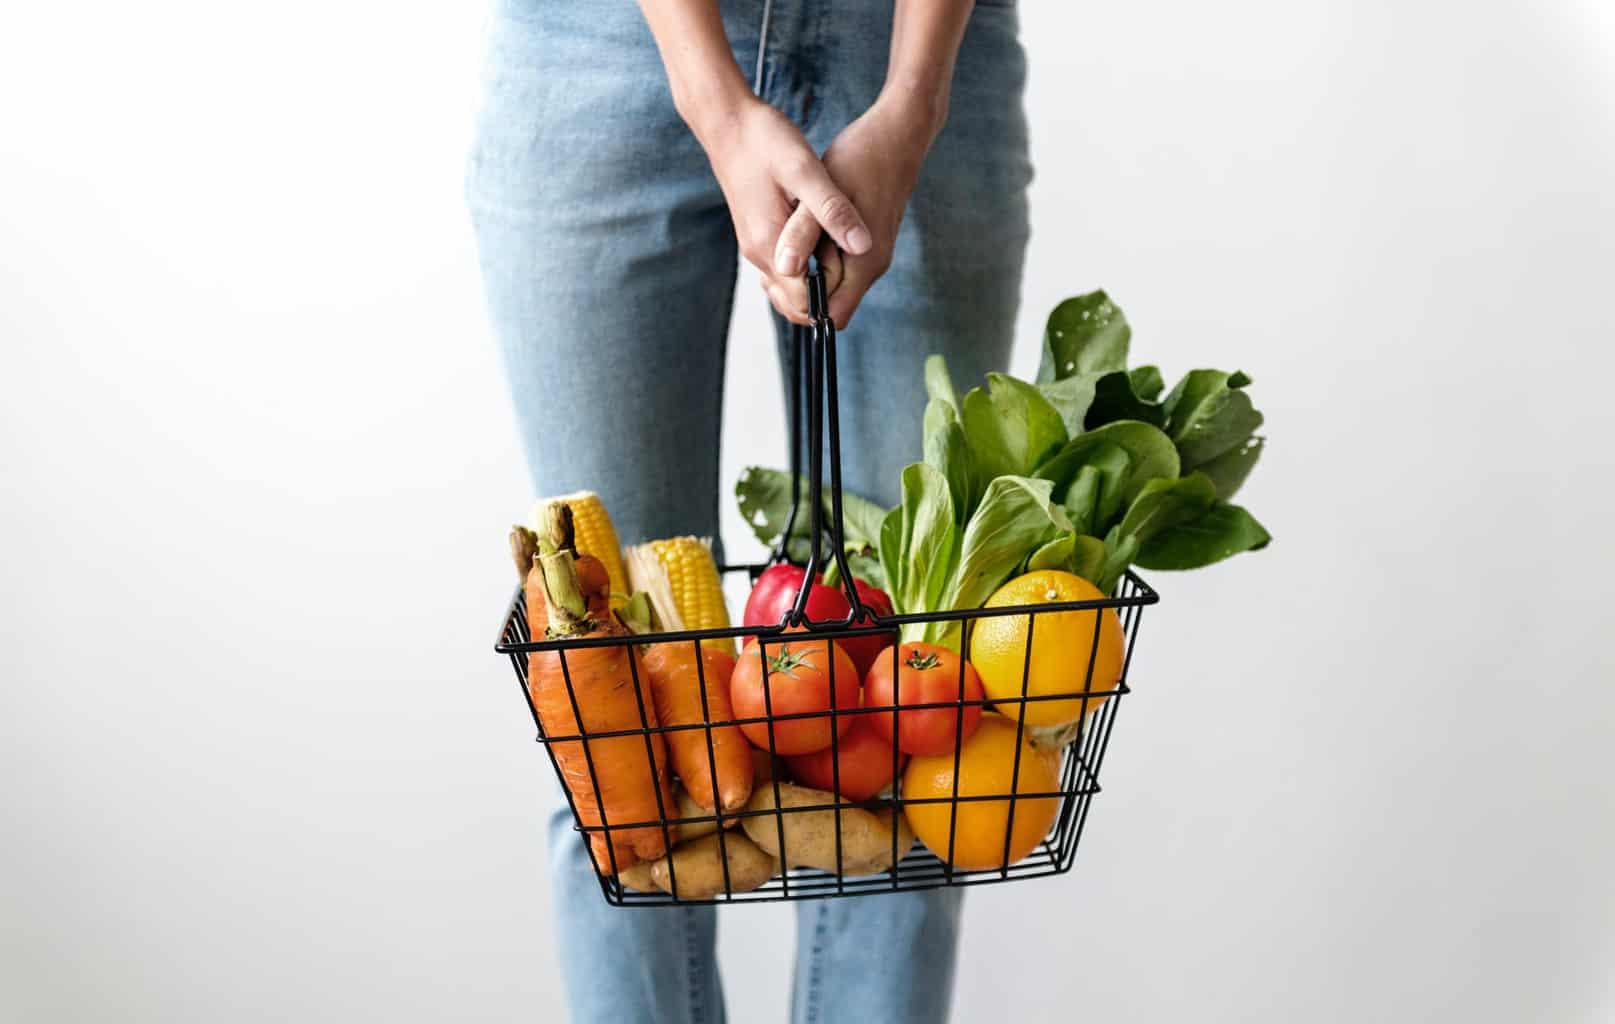 Woman holding shopping basket with food in it